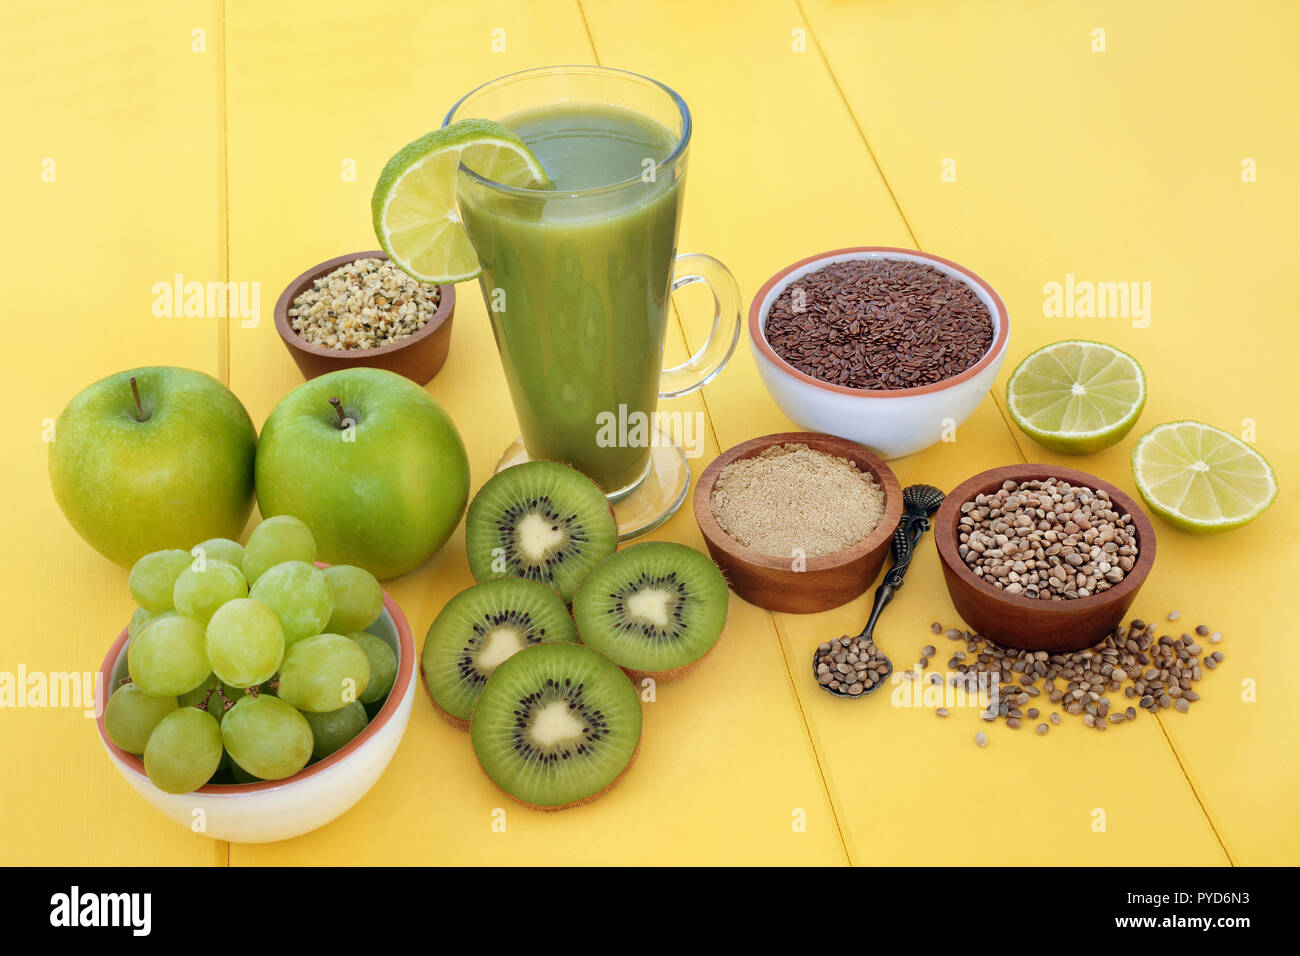 Healthy Fruit Juice Smoothie Drink With Hemp Powder Flax Chia And Hemp Seed With Fresh Fruit On Yellow Wood Background Stock Photo Alamy